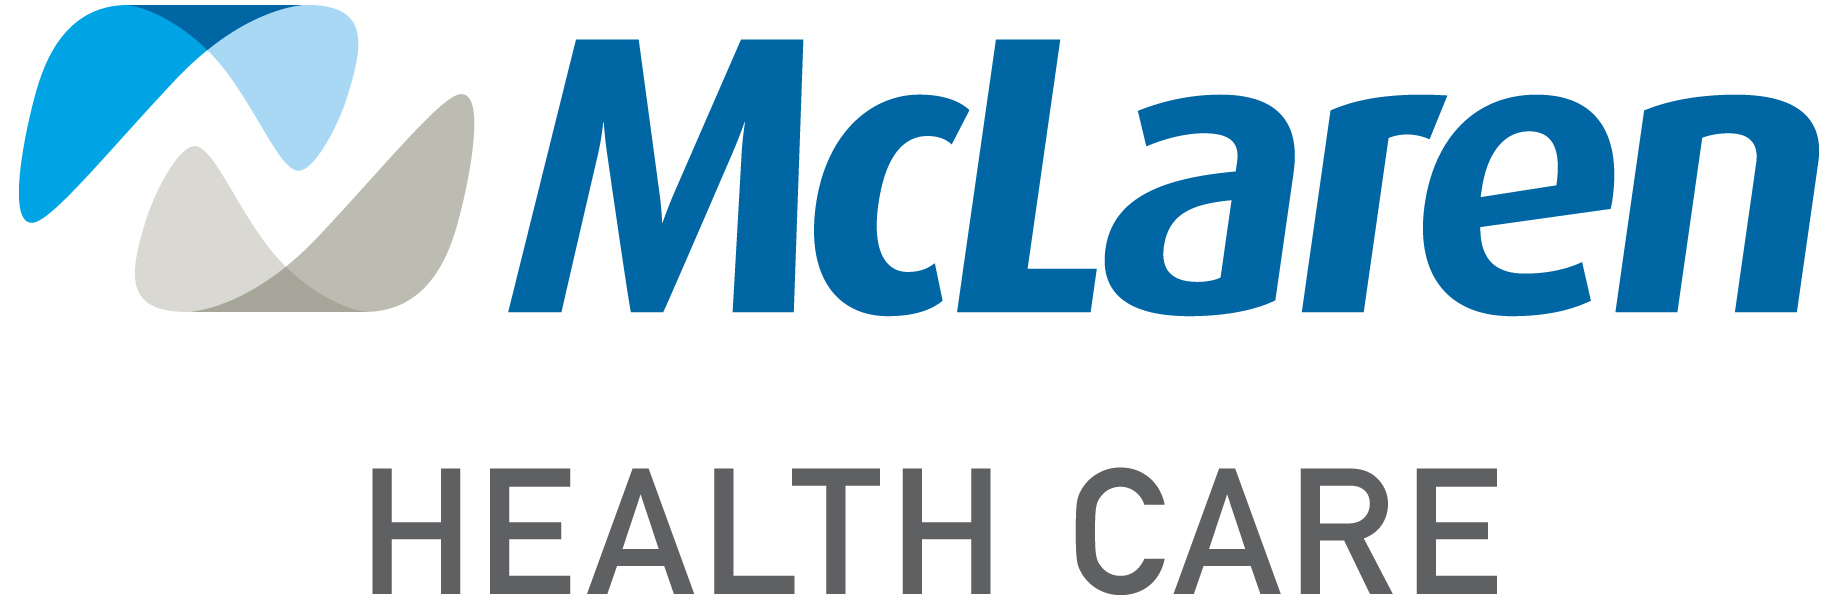 McLaren Health Care Names Bill Hardimon As President And CEO Of McLaren  Medical Group | Business Wire